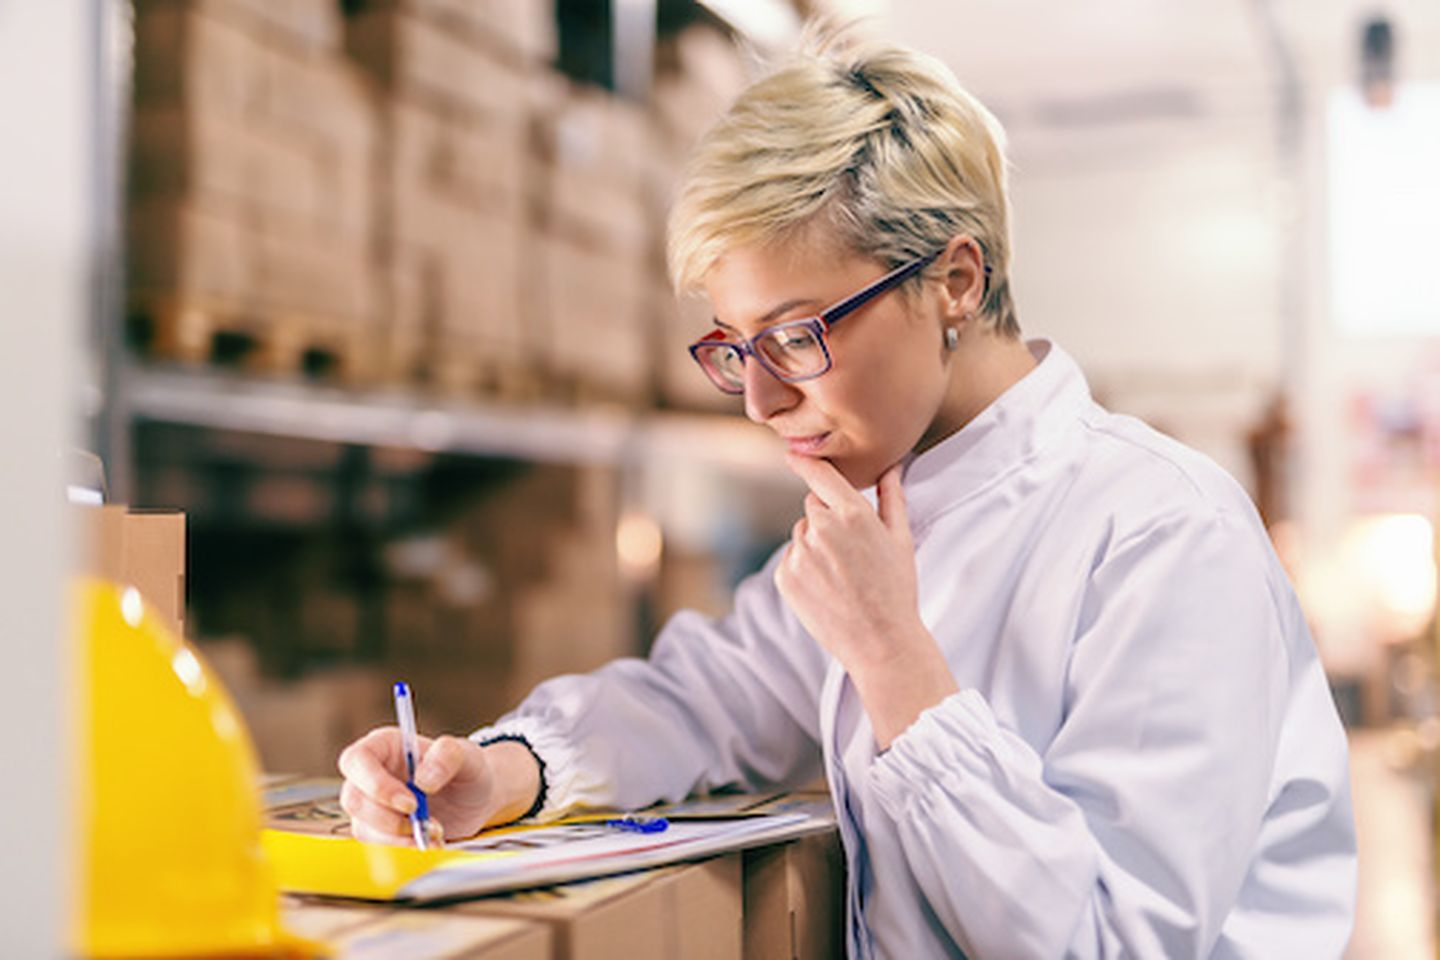 Young blonde caucasian woman in white uniform and with eyeglasses filling out paperwork while standing in warehouse